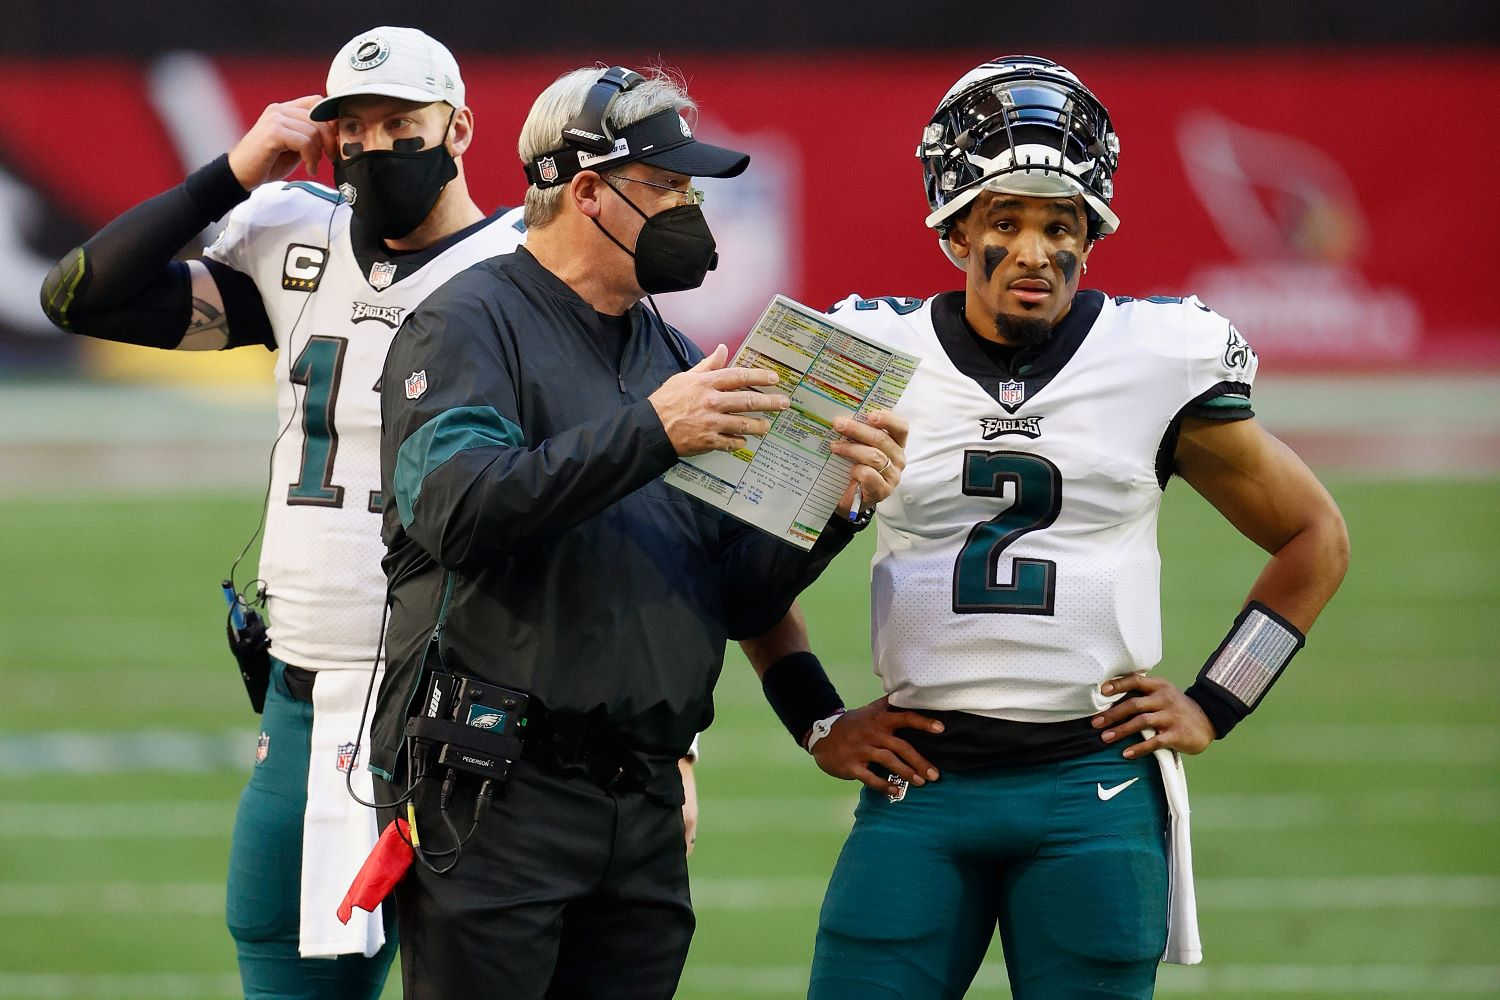 Tyree Jackson won't throw another NFL pass if the Philadelphia Eagles succeed with their plan for the freakishly gifted quarterback.